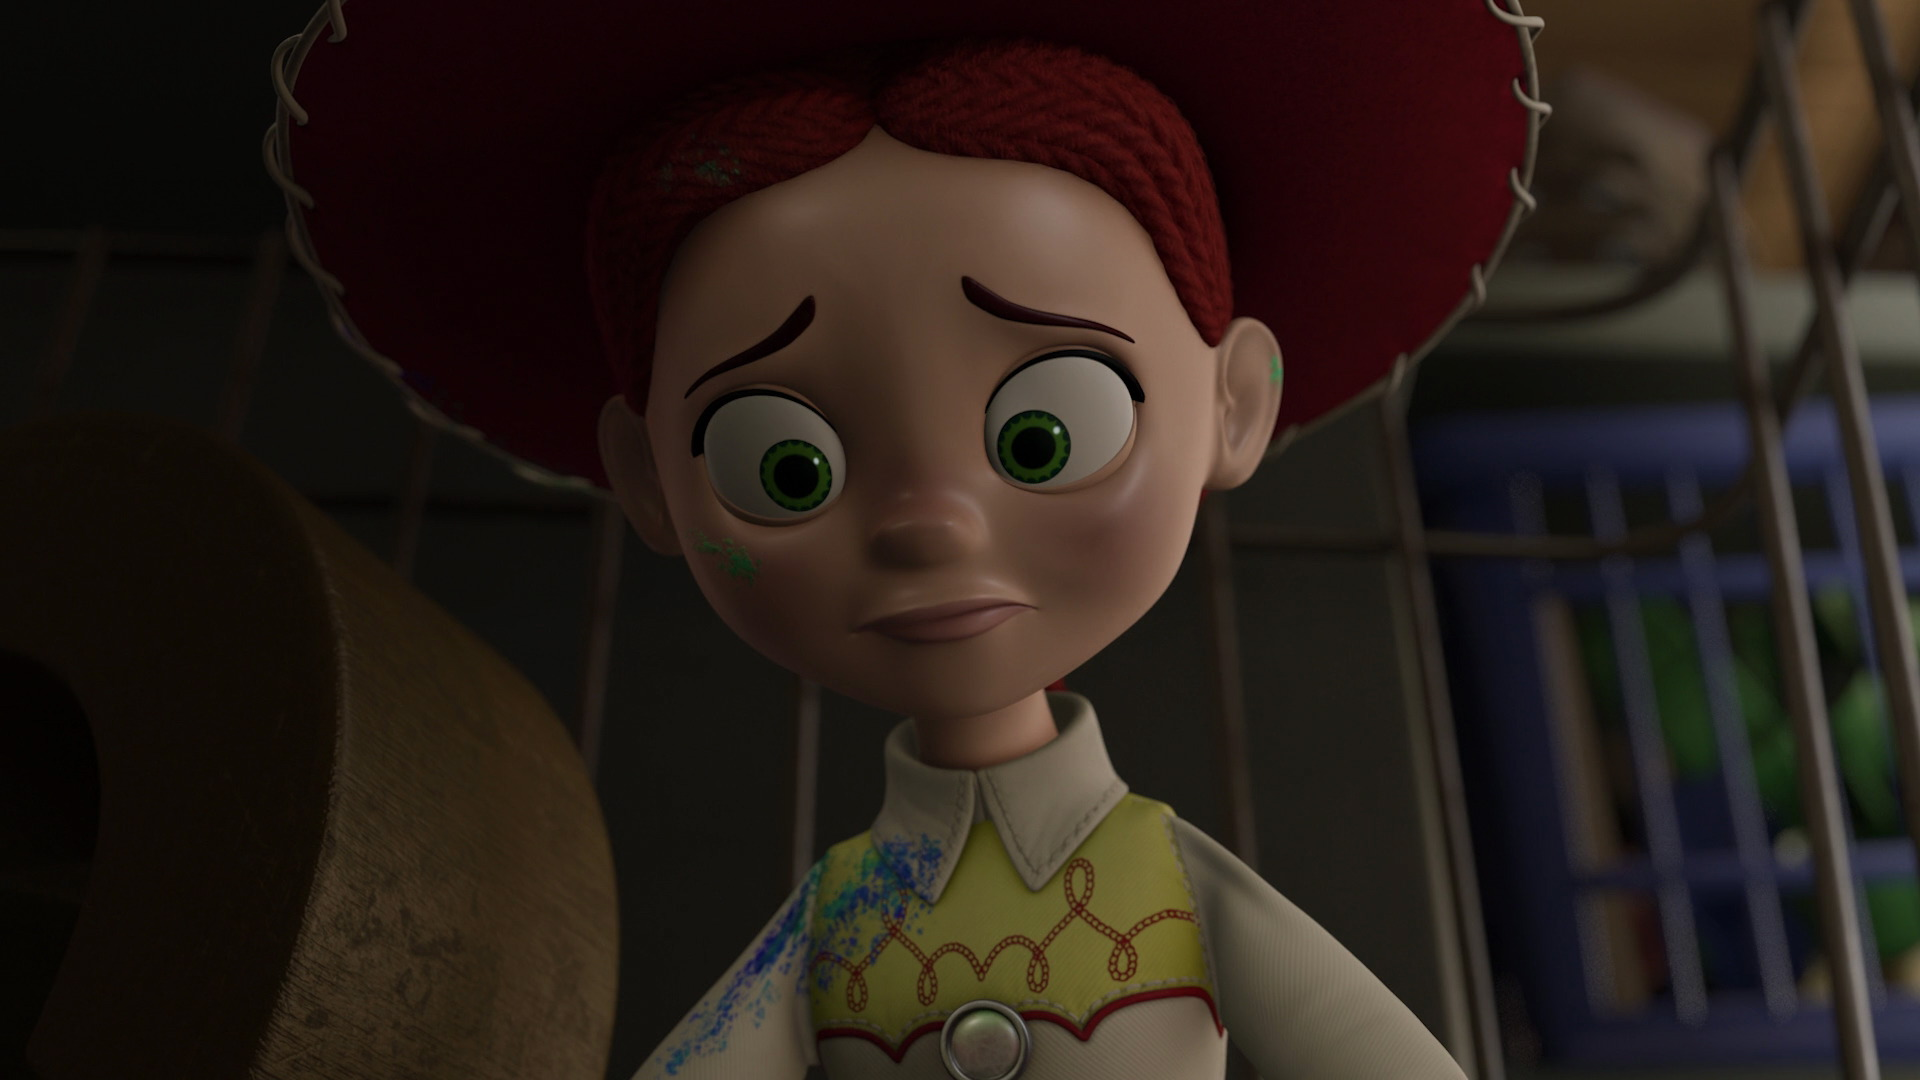 Jessie Character From Toy Story 2 Pixar Planet Fr